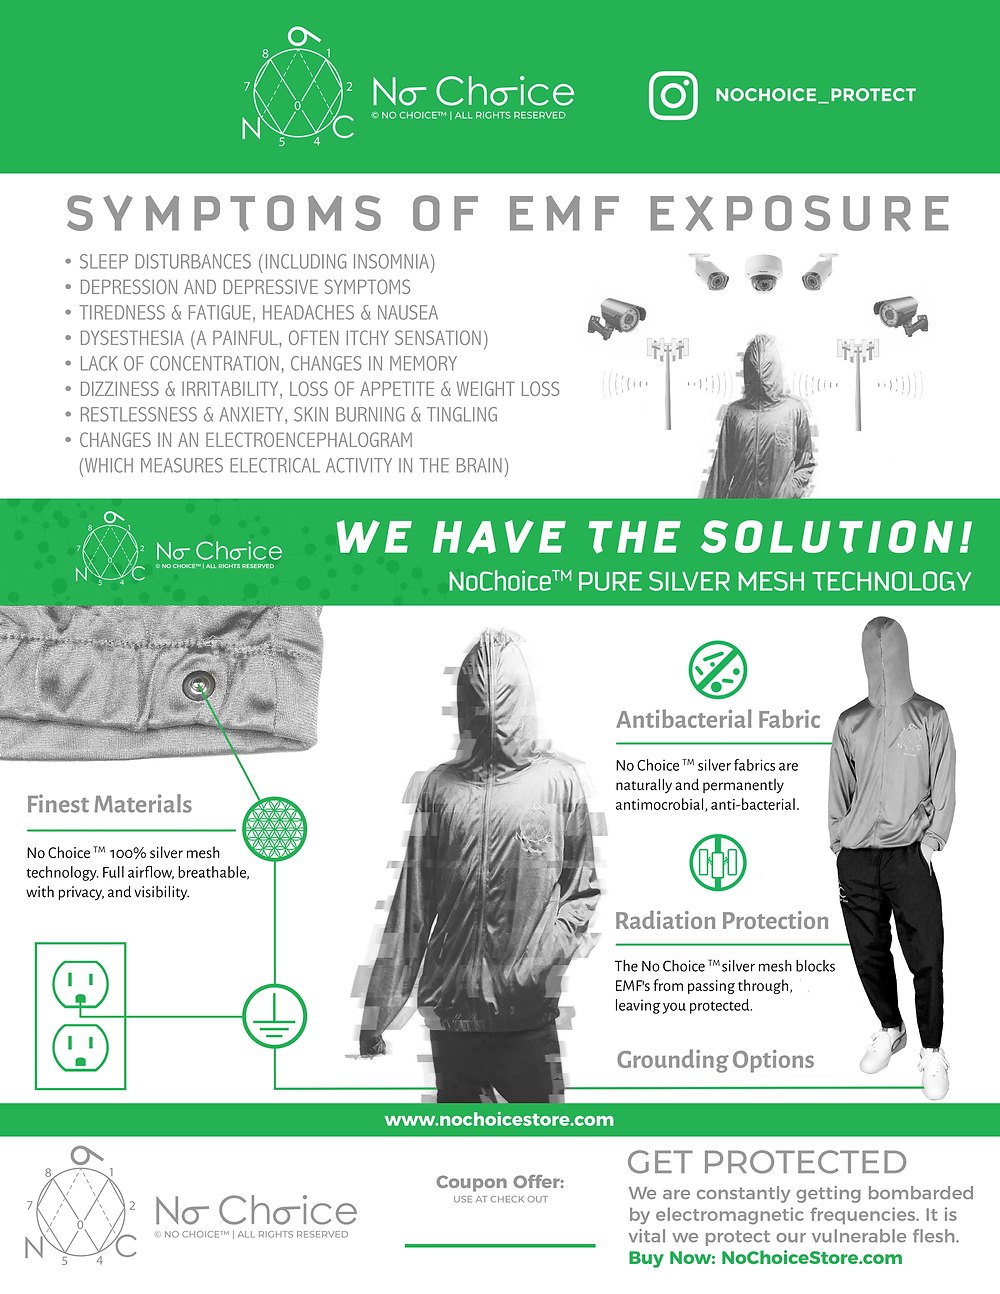 EMF protection clothing that protects from electromagnetic radiation and grounds you to the earth